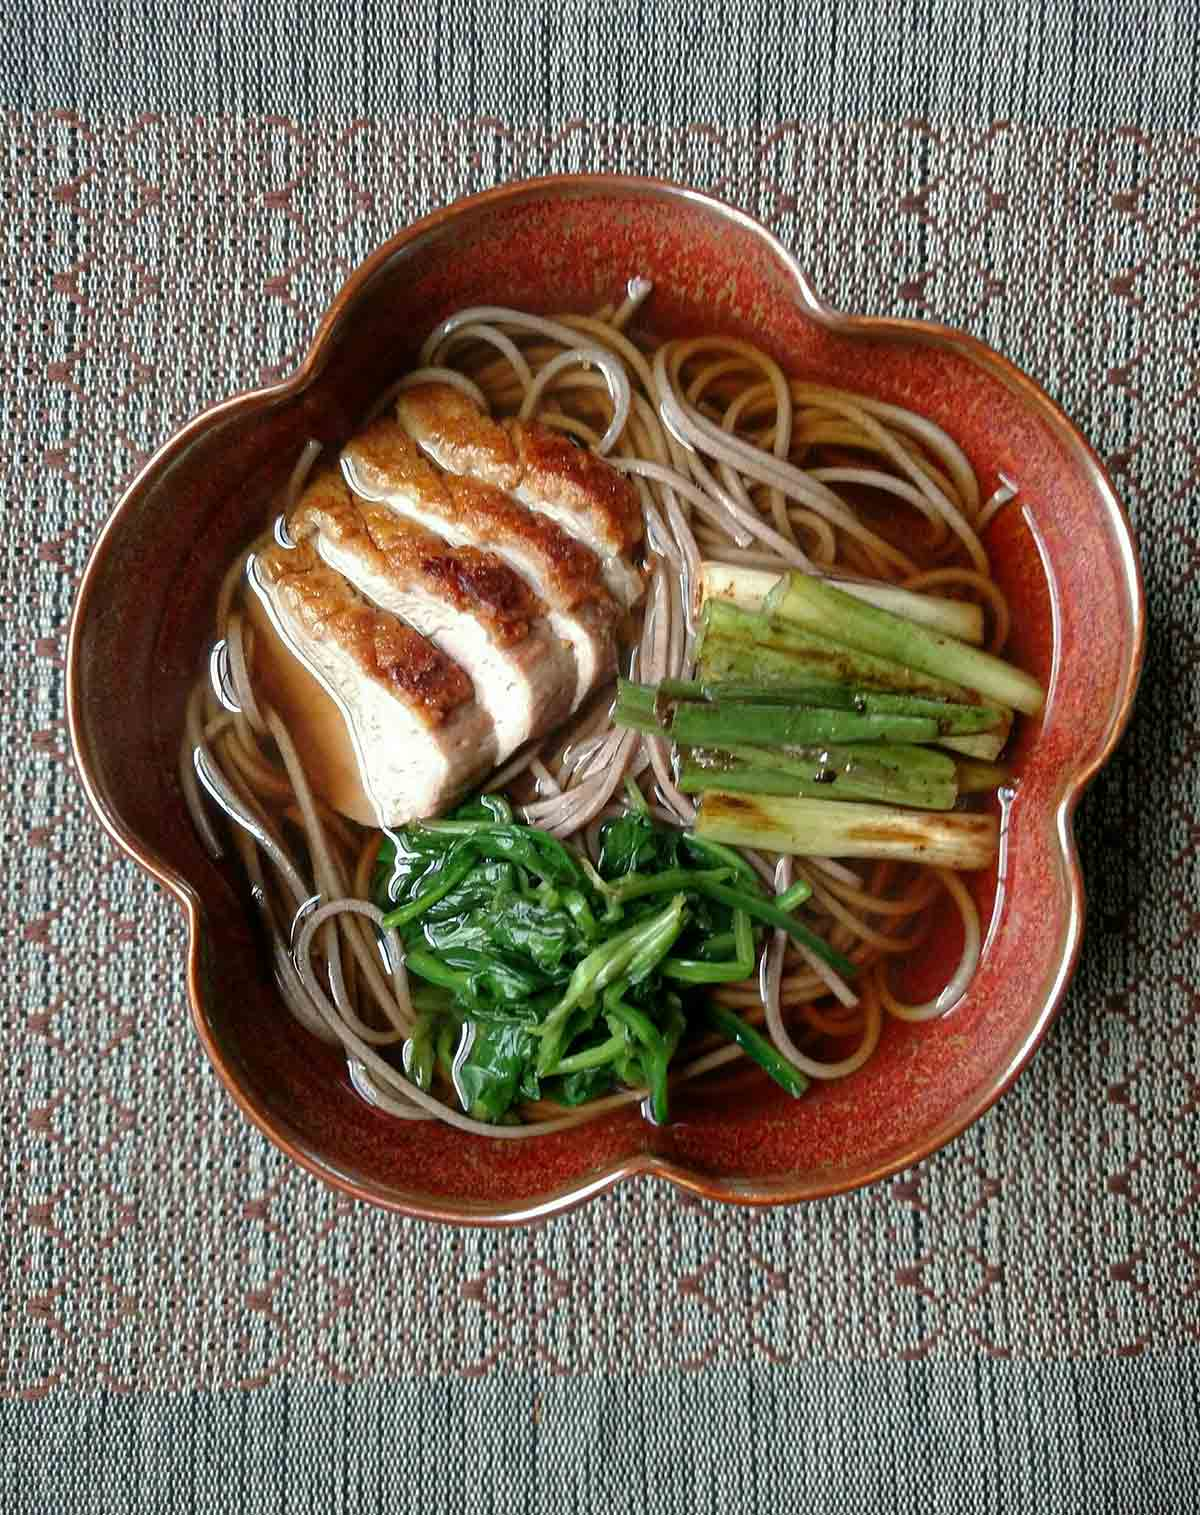 A bowl filled with duck soba, seasoned spinach, and scallions.